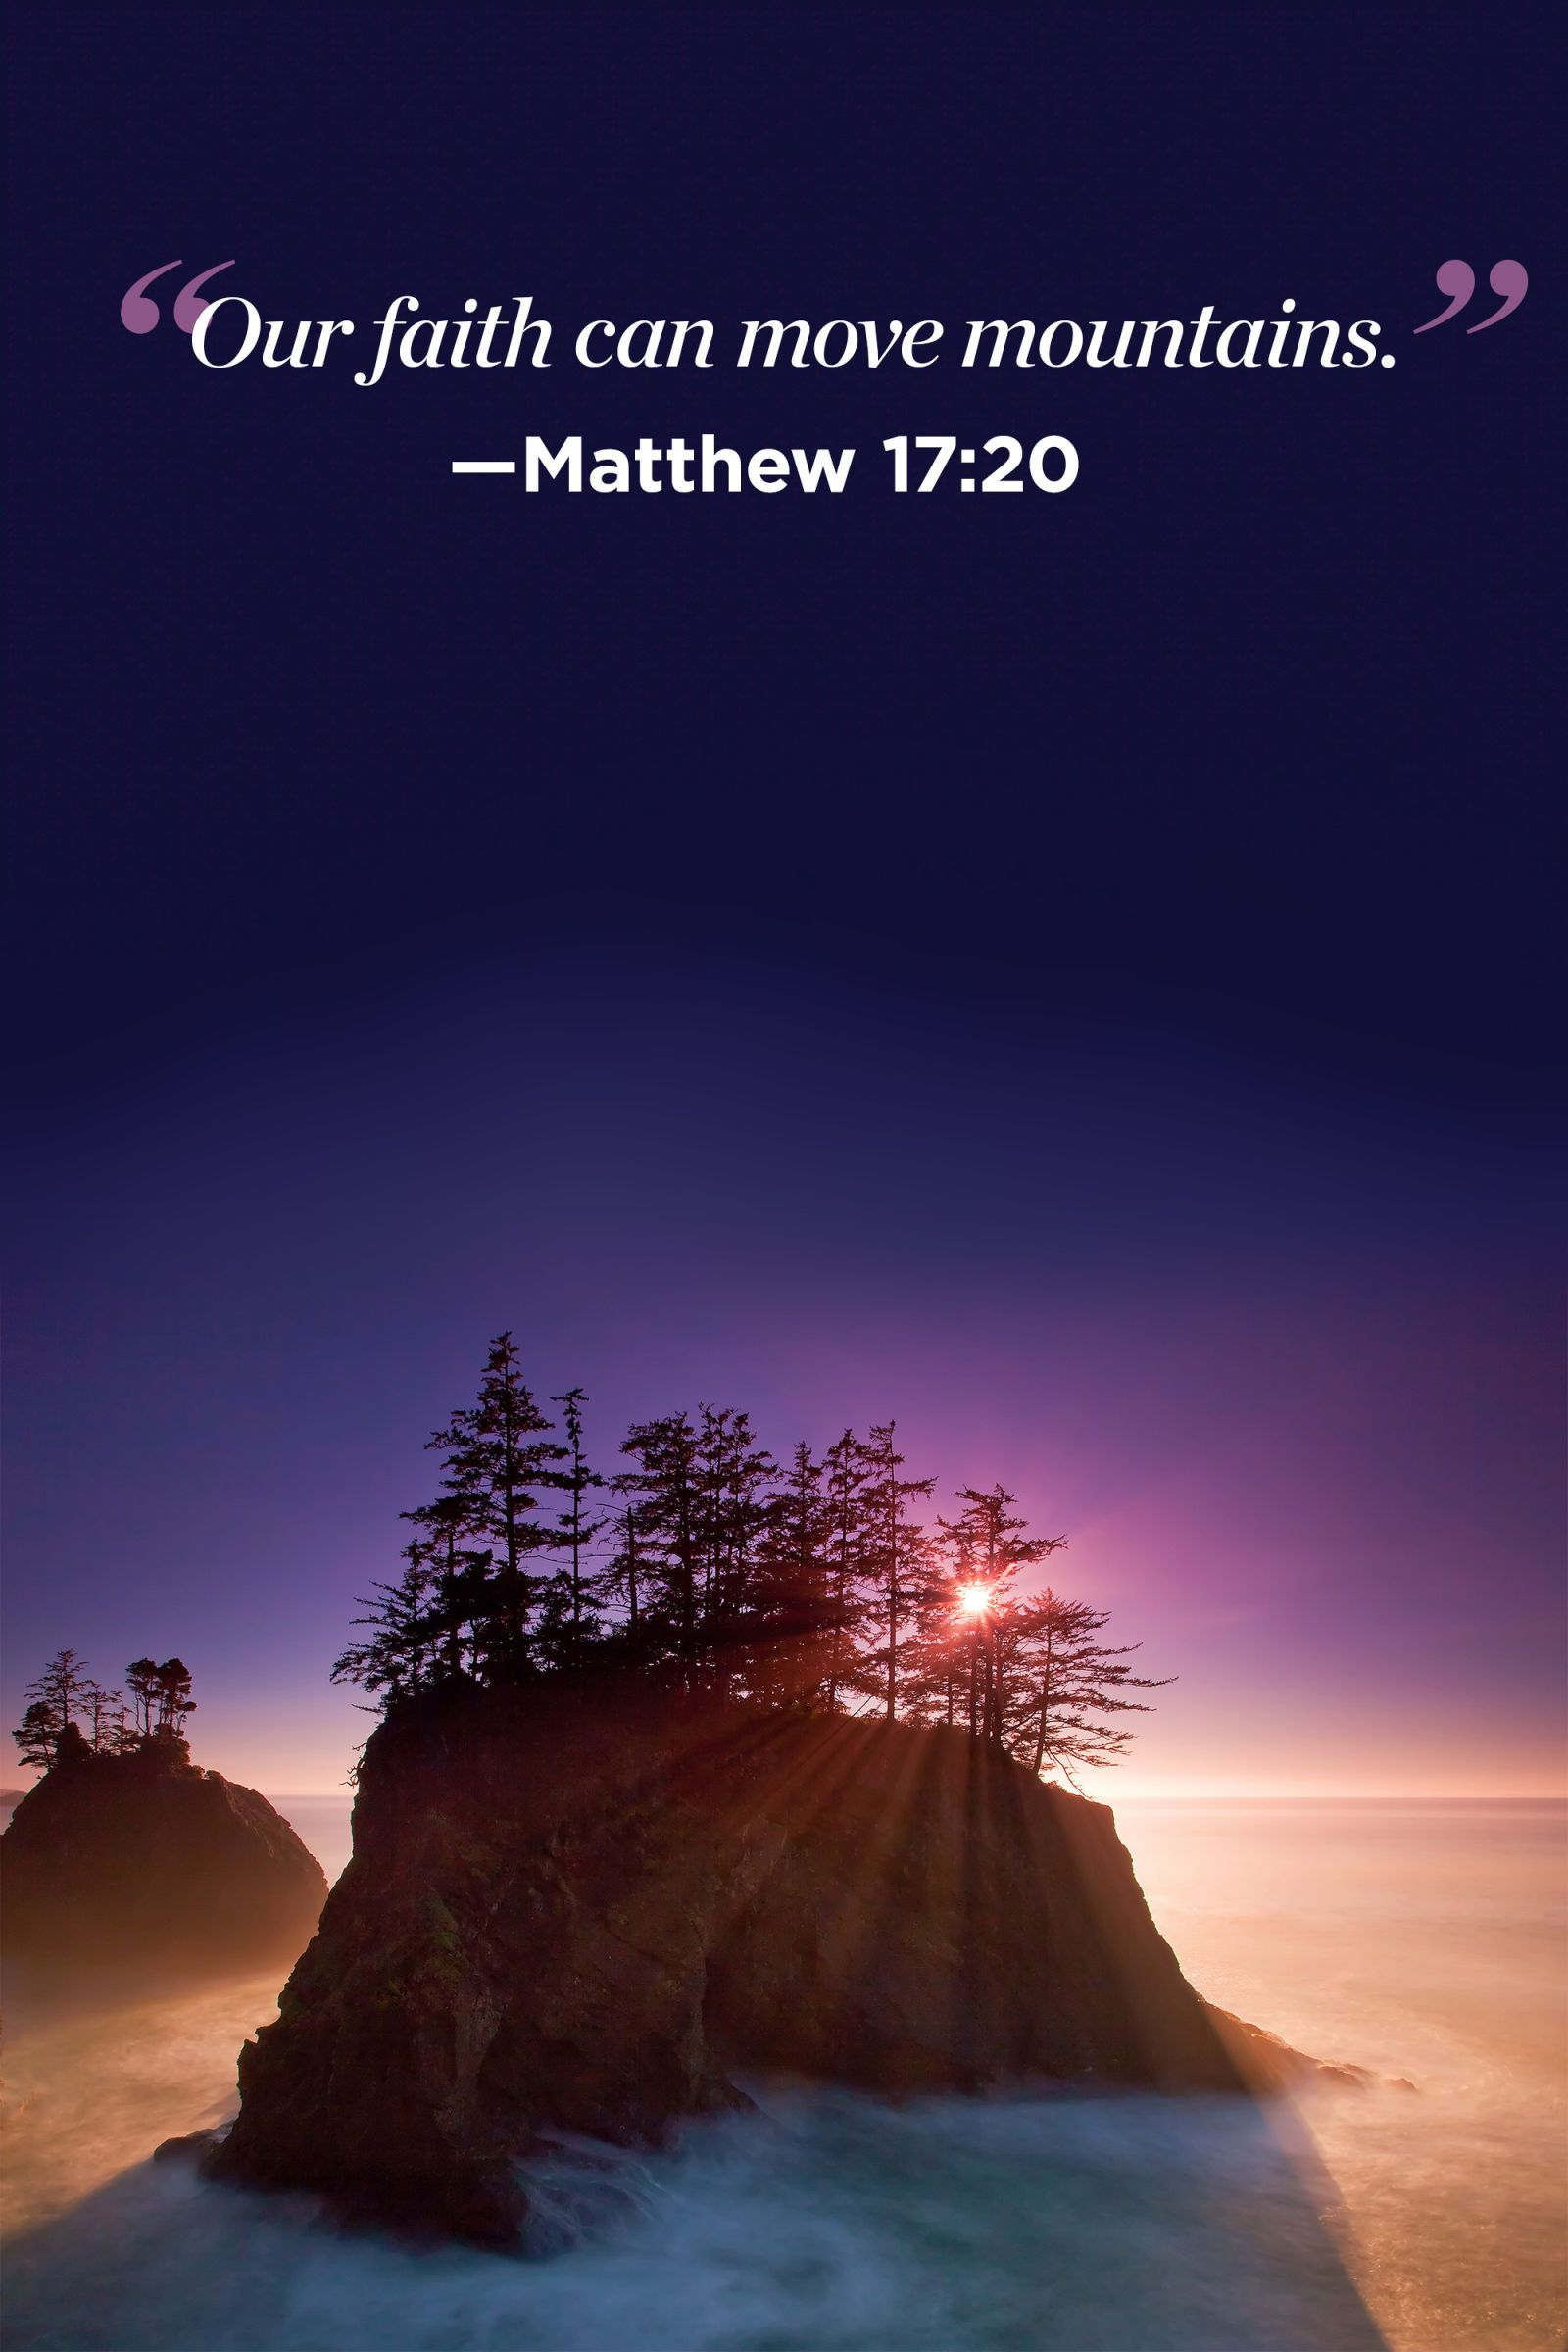 Quotes About Life From The Bible 26 Inspirational Bible Quotes That Will Change Your Perspective On